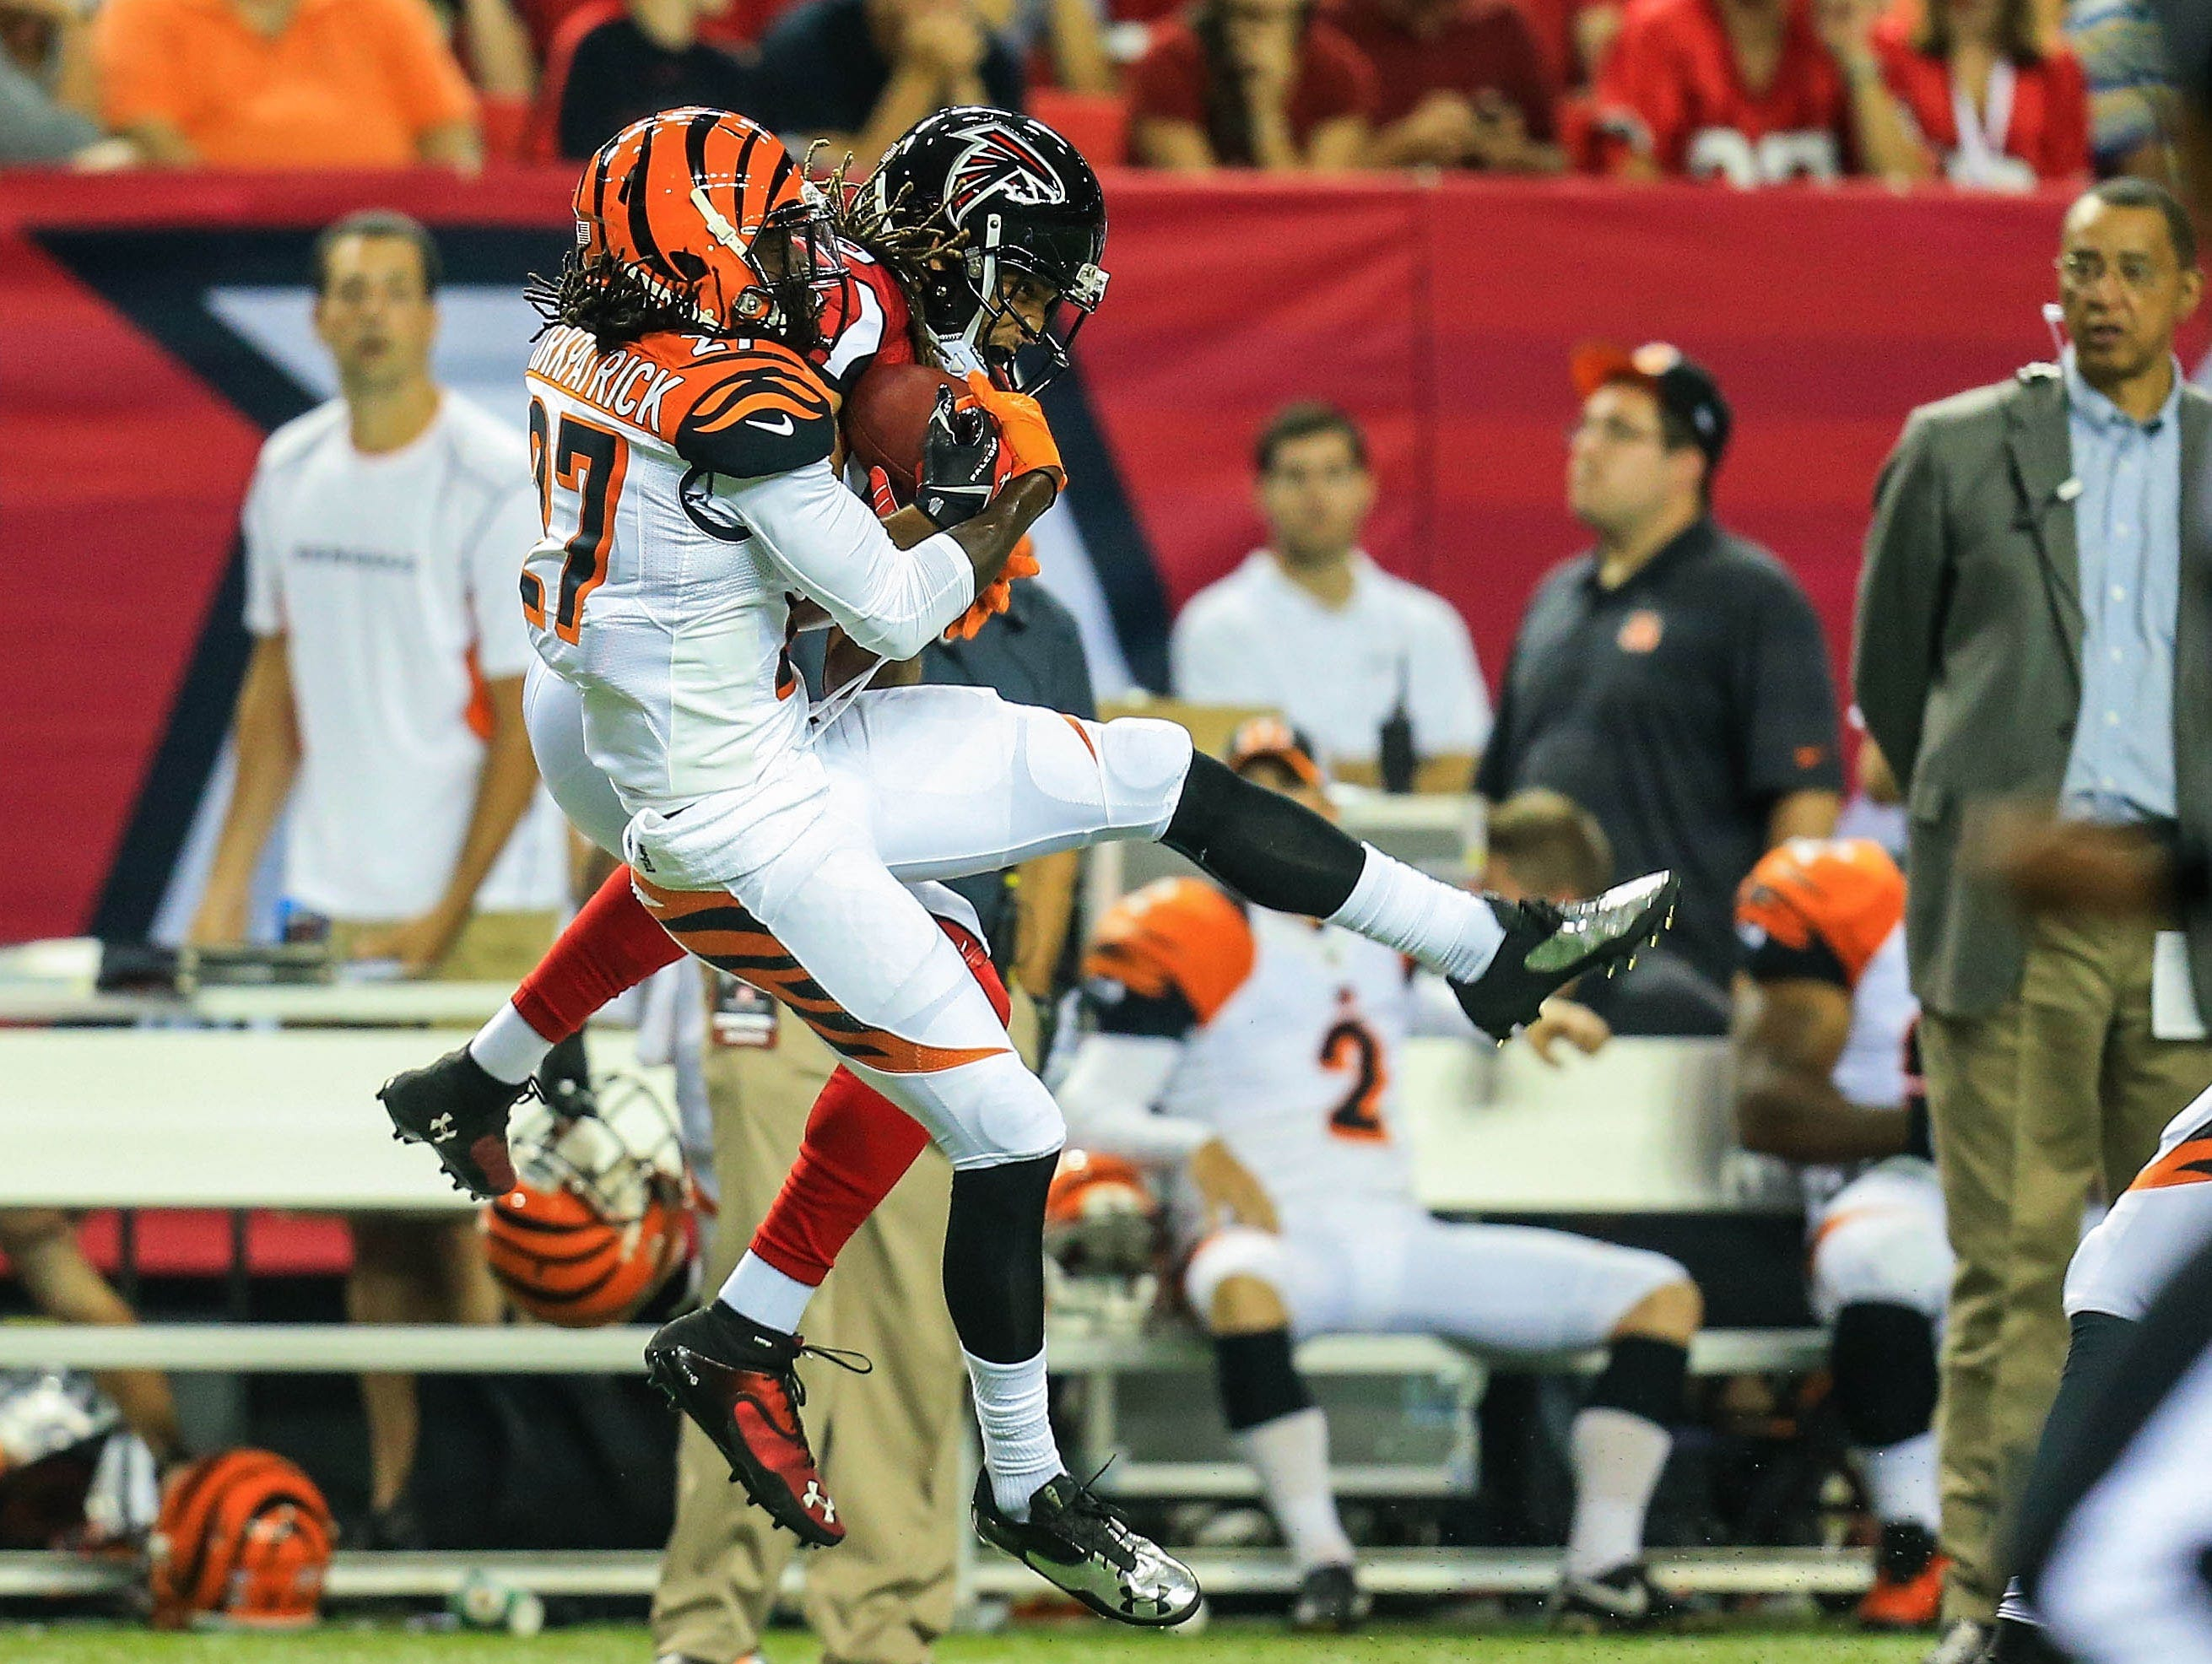 Cincinnati Bengals cornerback Dre Kirkpatrick (27) breaks up a pass intended for Atlanta Falcons wide receiver Kevin Cone (15) in the first half at the Georgia Dome.